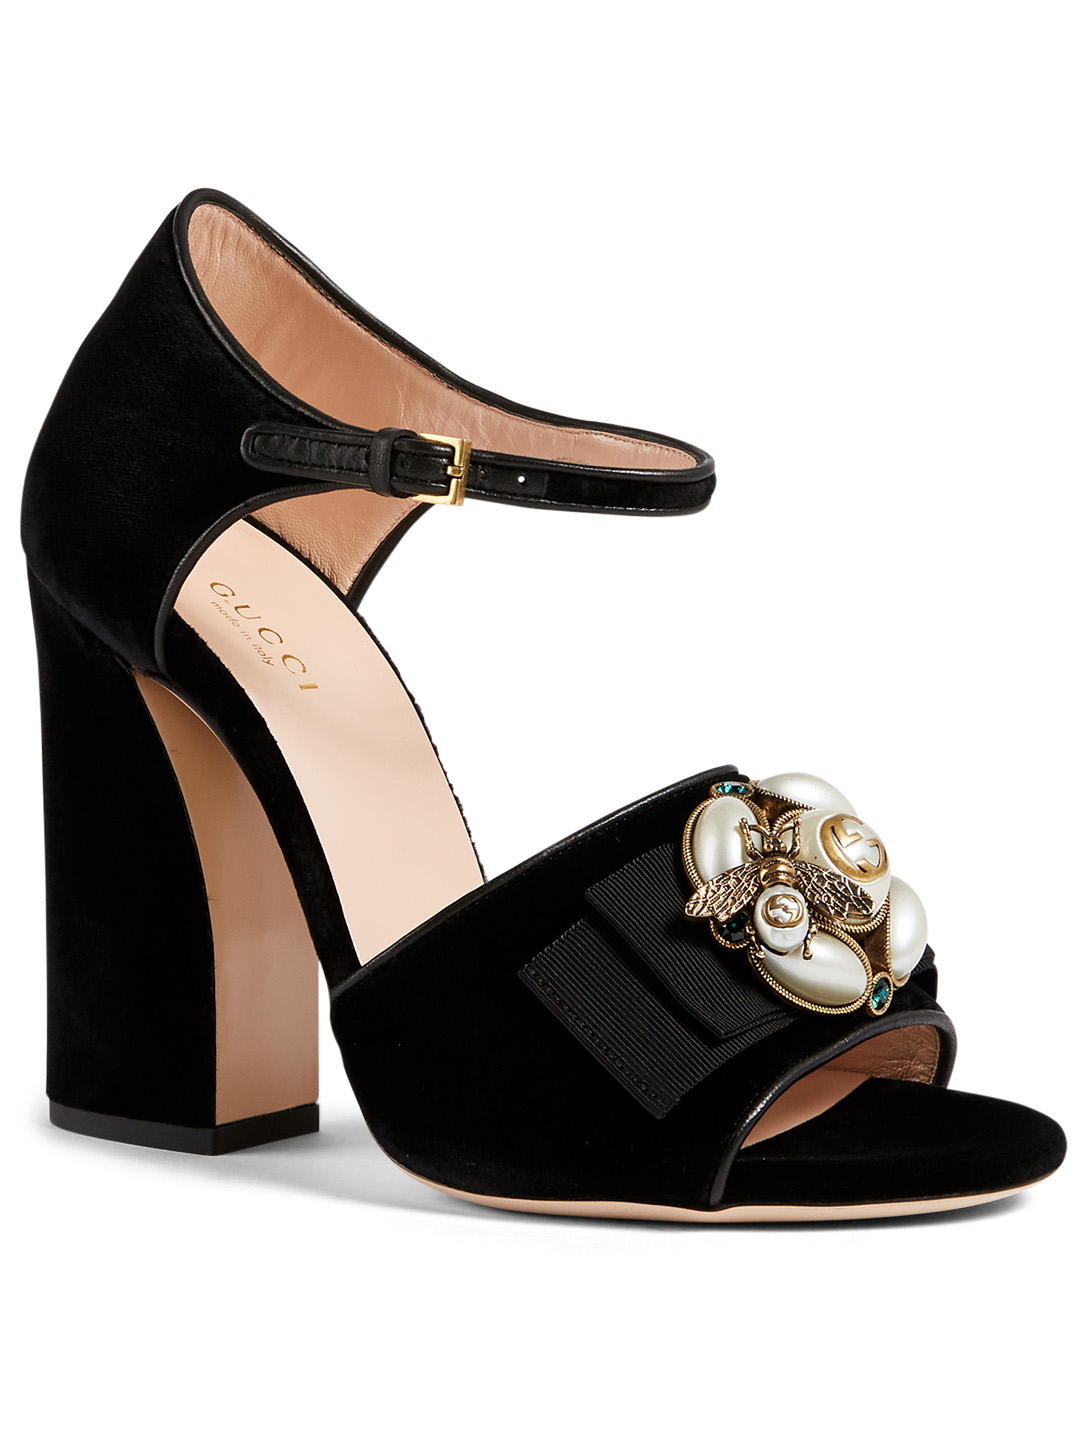 GUCCI Étoile Velvet Heeled Sandals With Bee Detail Designers Black